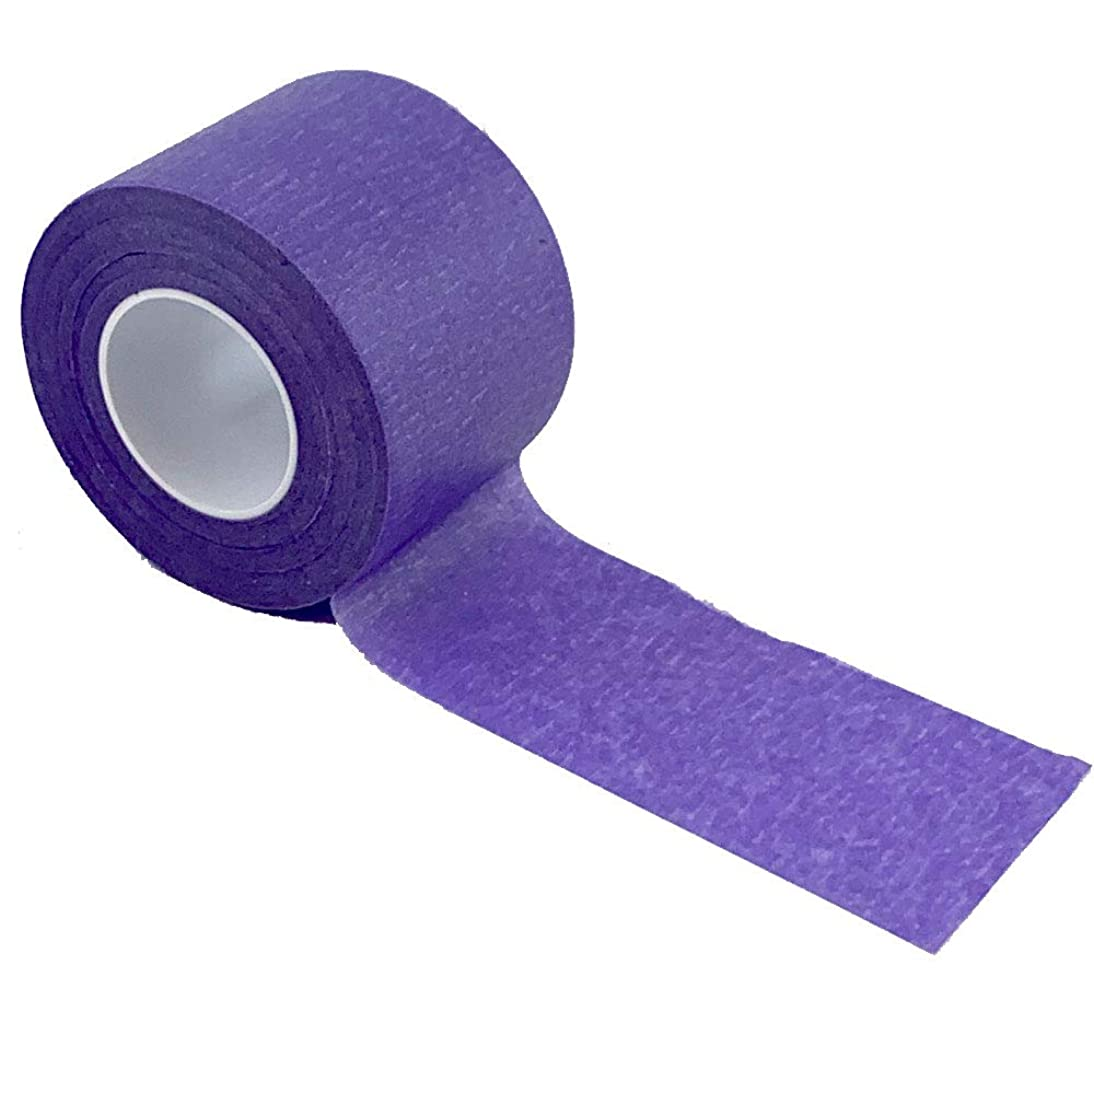 iCraft Purple Tape Removable 1.5 Inches x 15 Yards